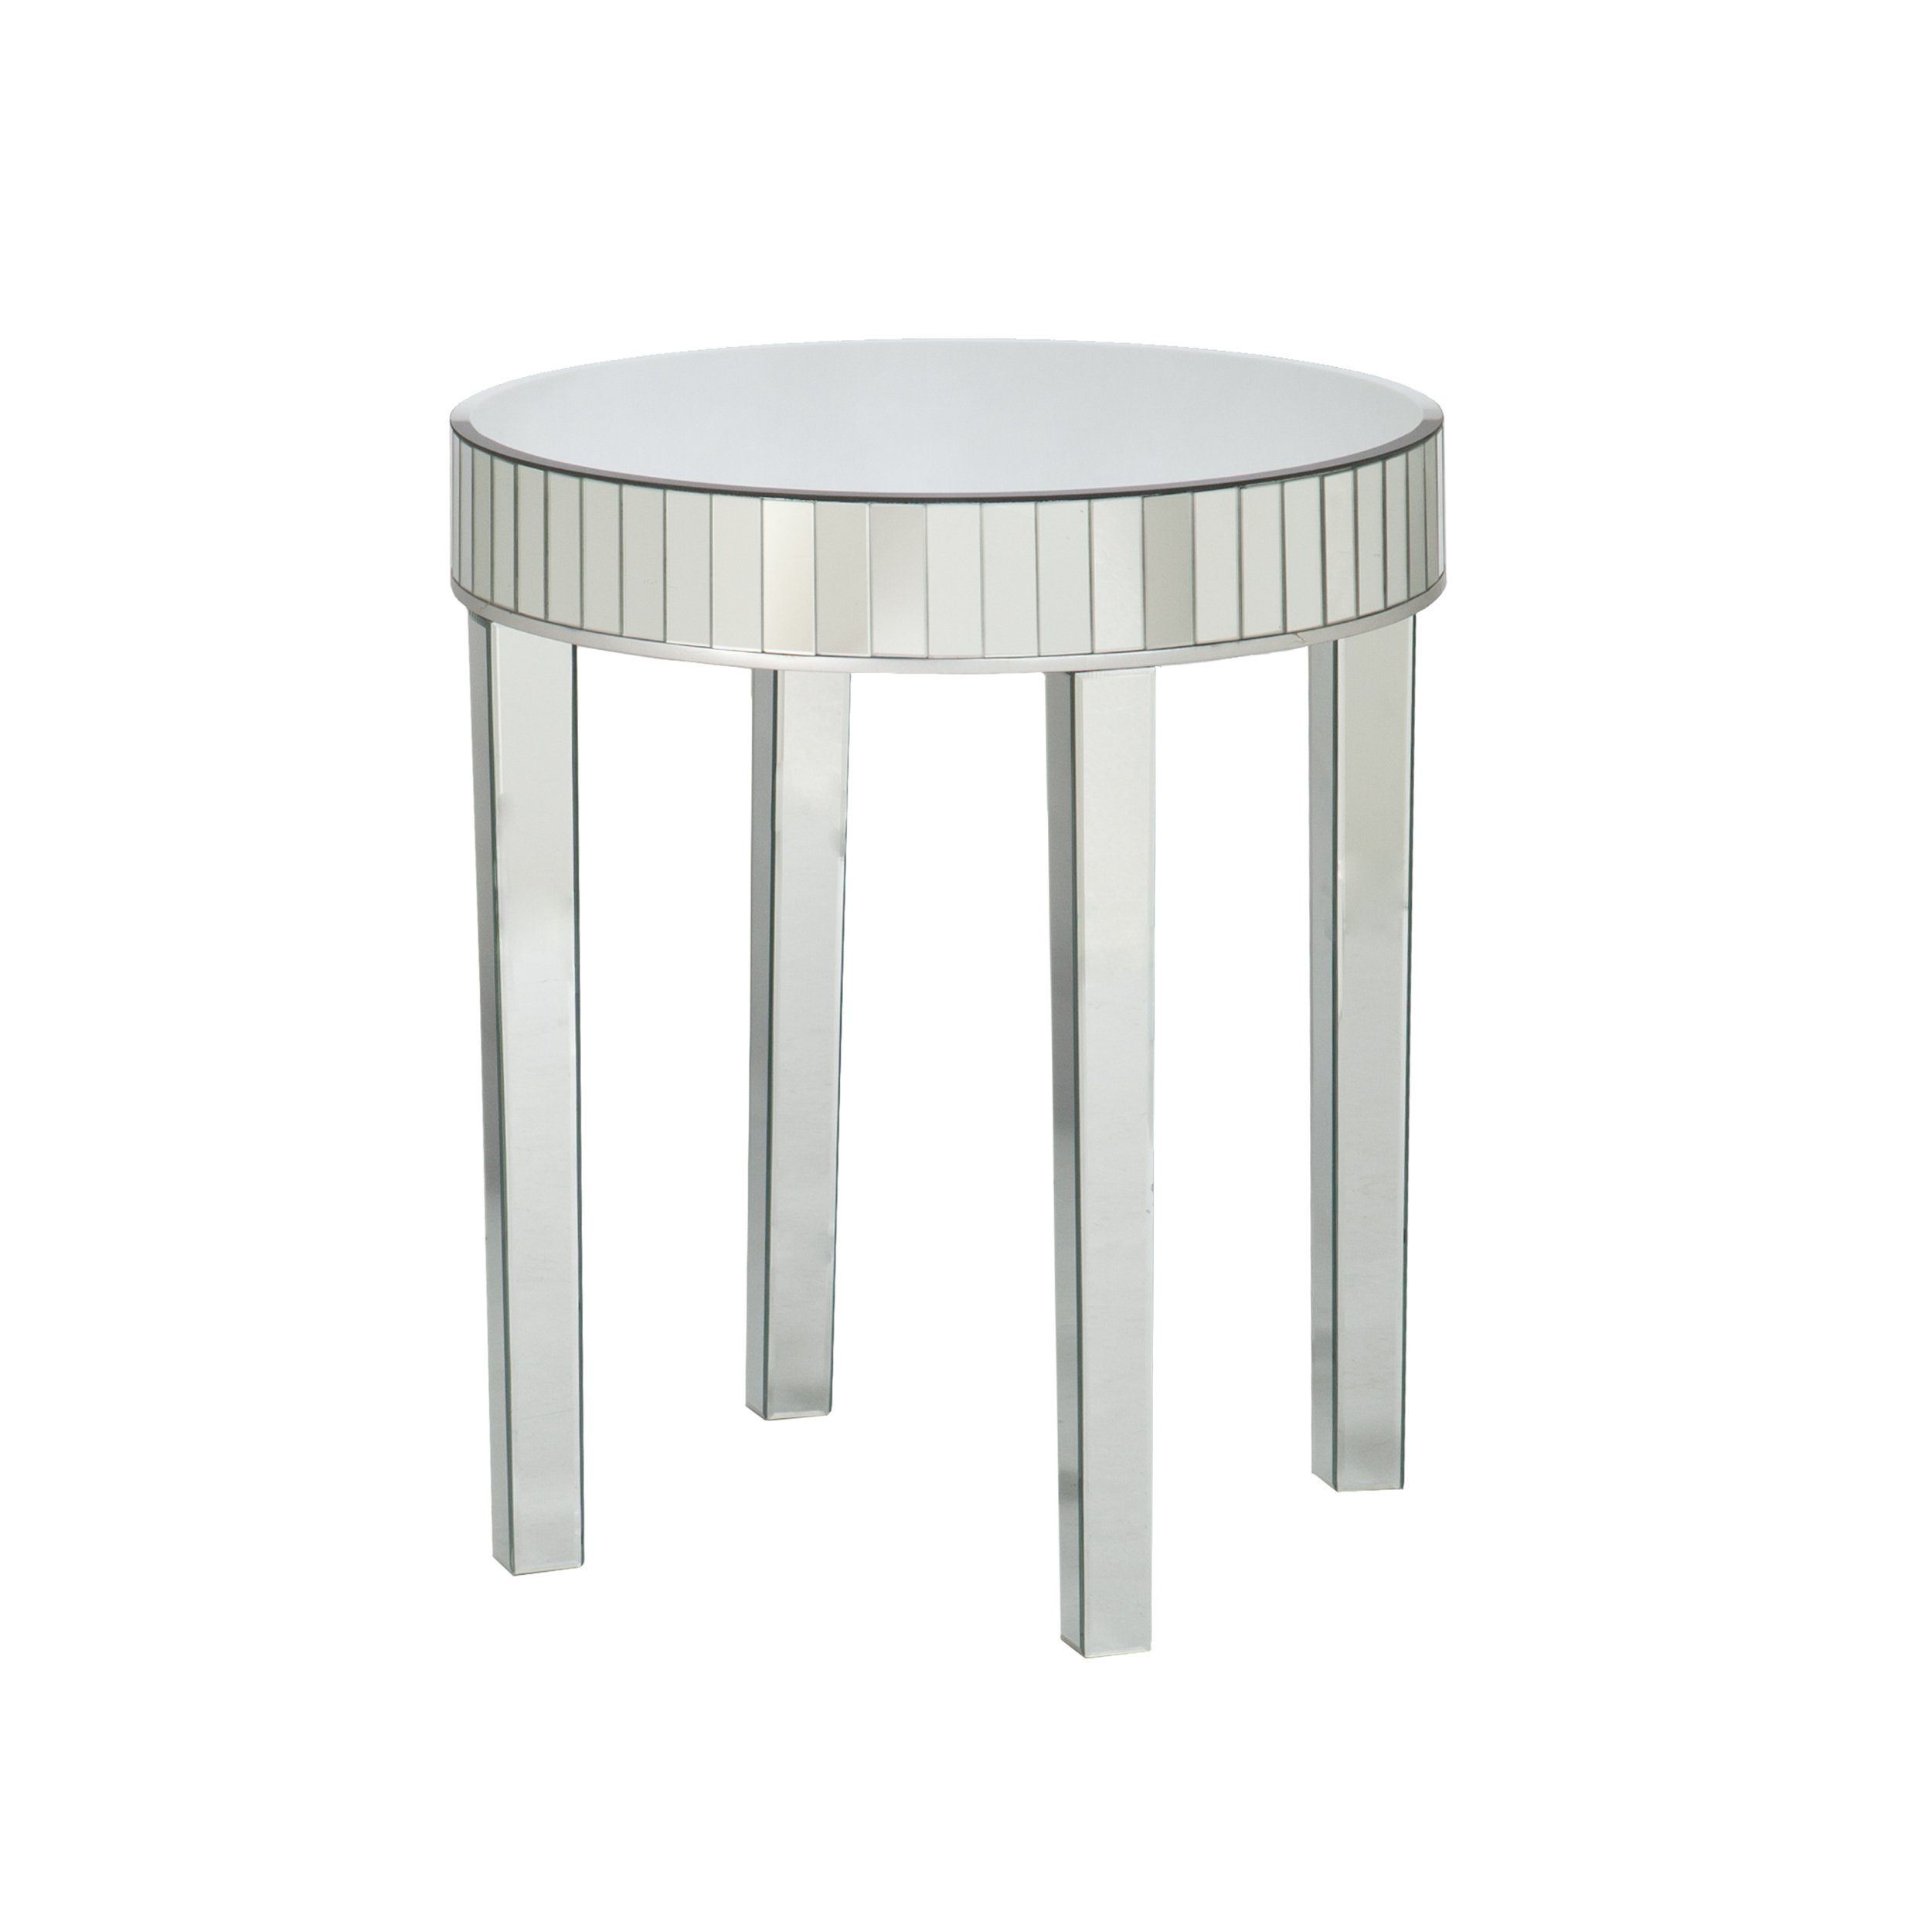 southern enterprises accent tables nolan pedestal table wooden bedside antique square coffee the range lamps mid century modern couch mackenzie mirrored outdoor side plastic